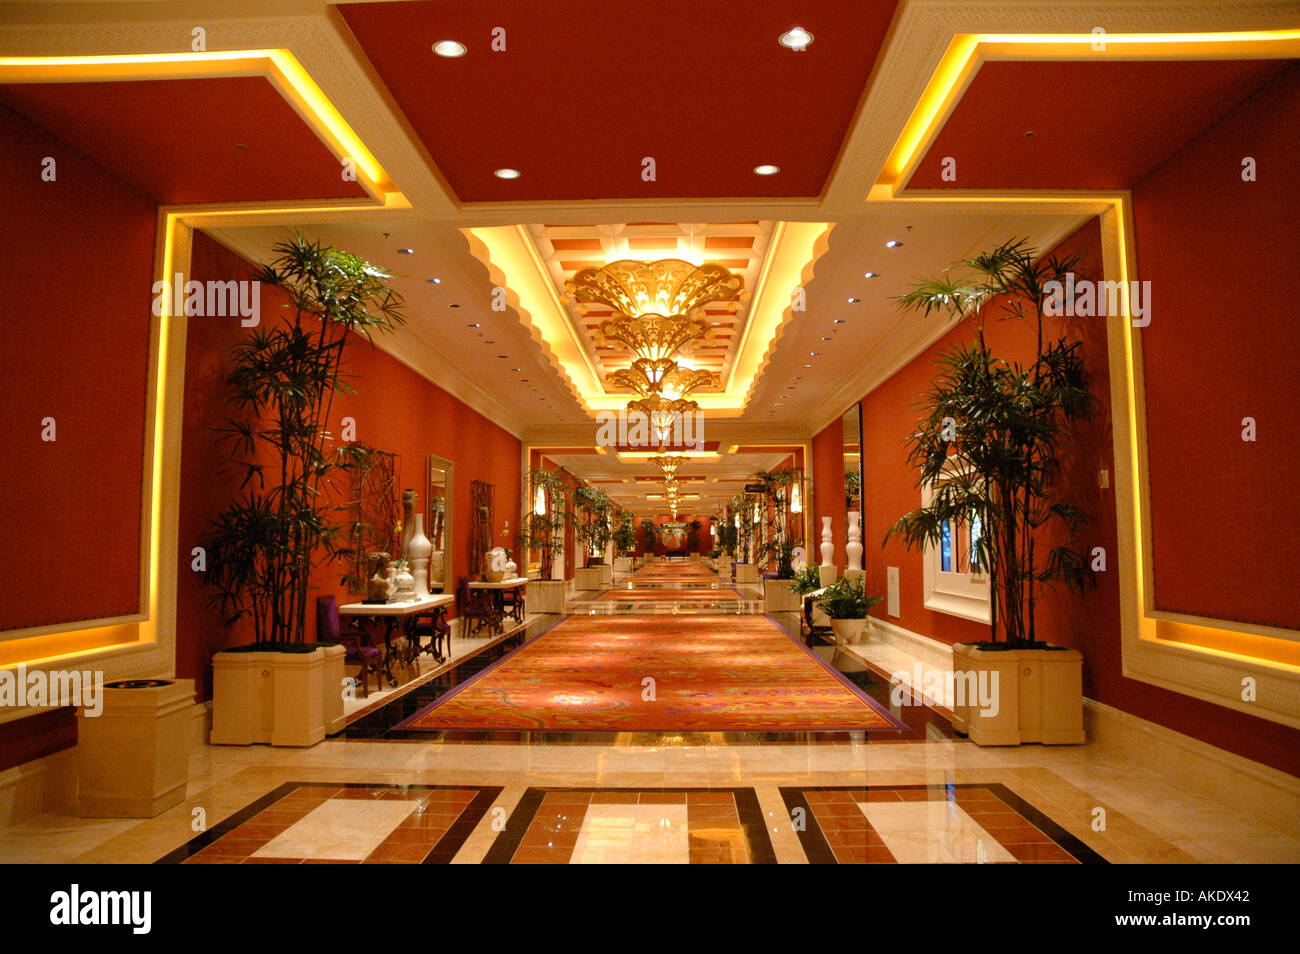 las vegas nevada wynn hotel interior hallway business